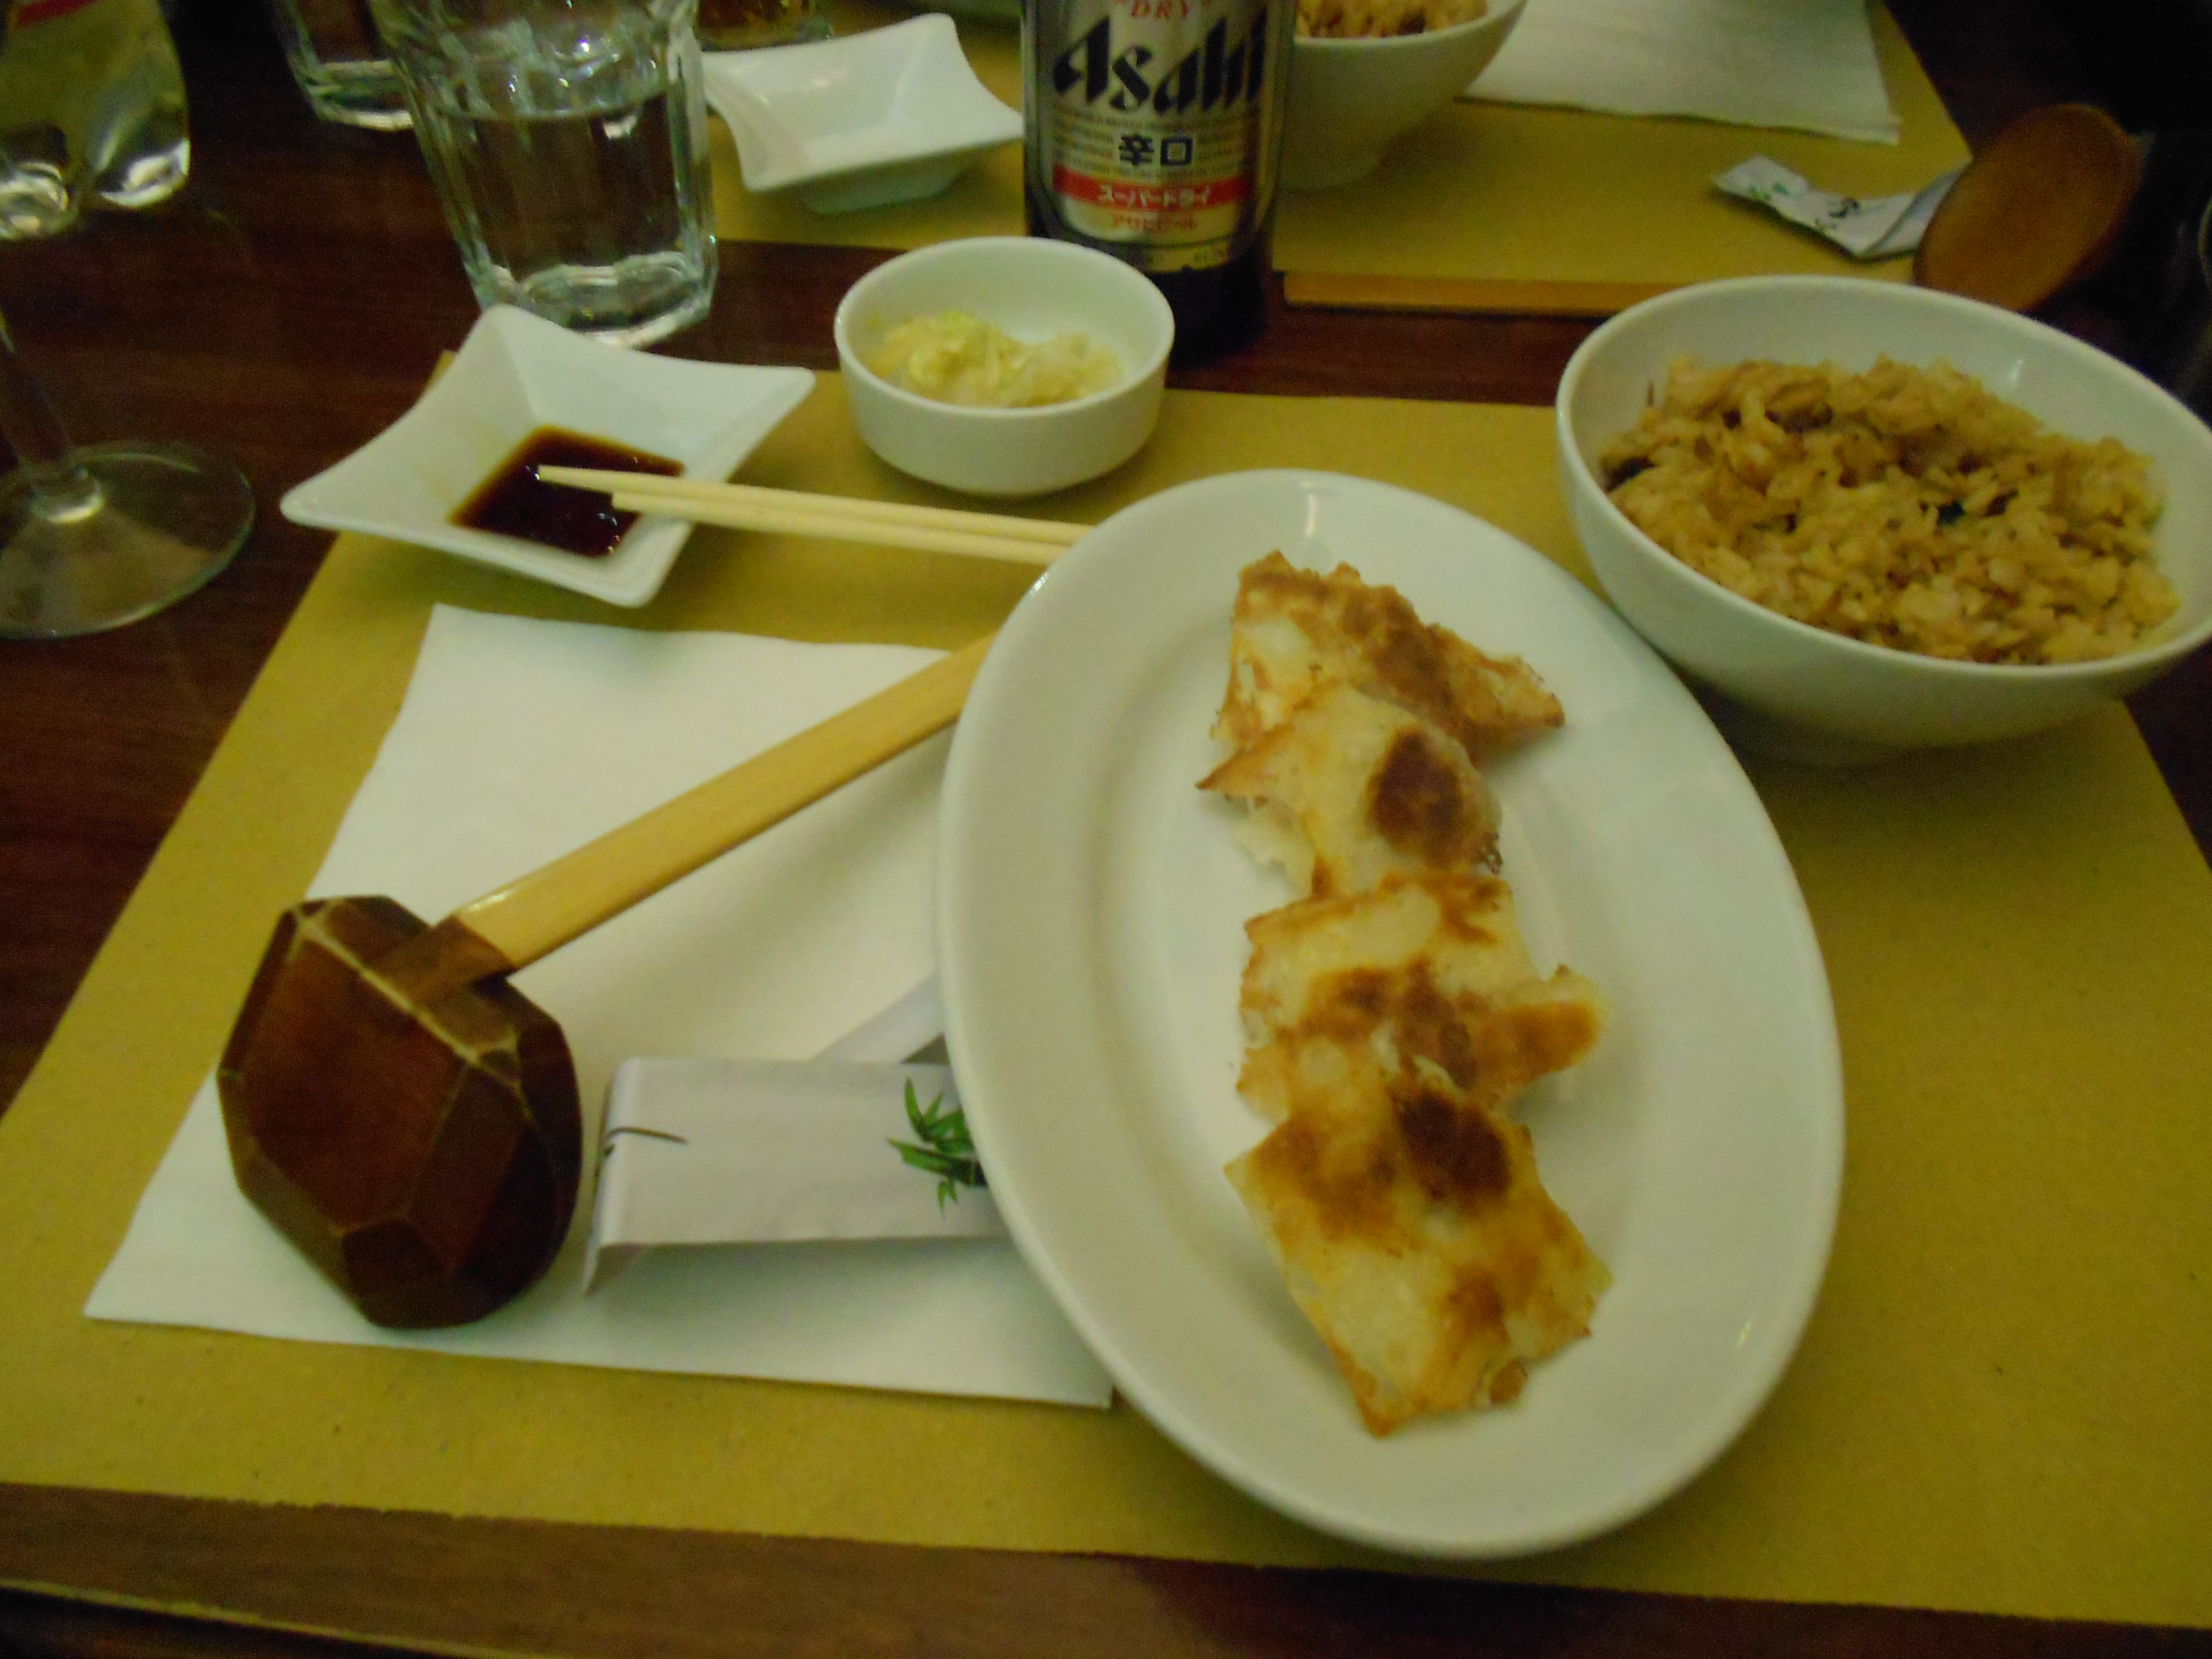 A delicious combination of food, gyoza, fried rice, and cabbage